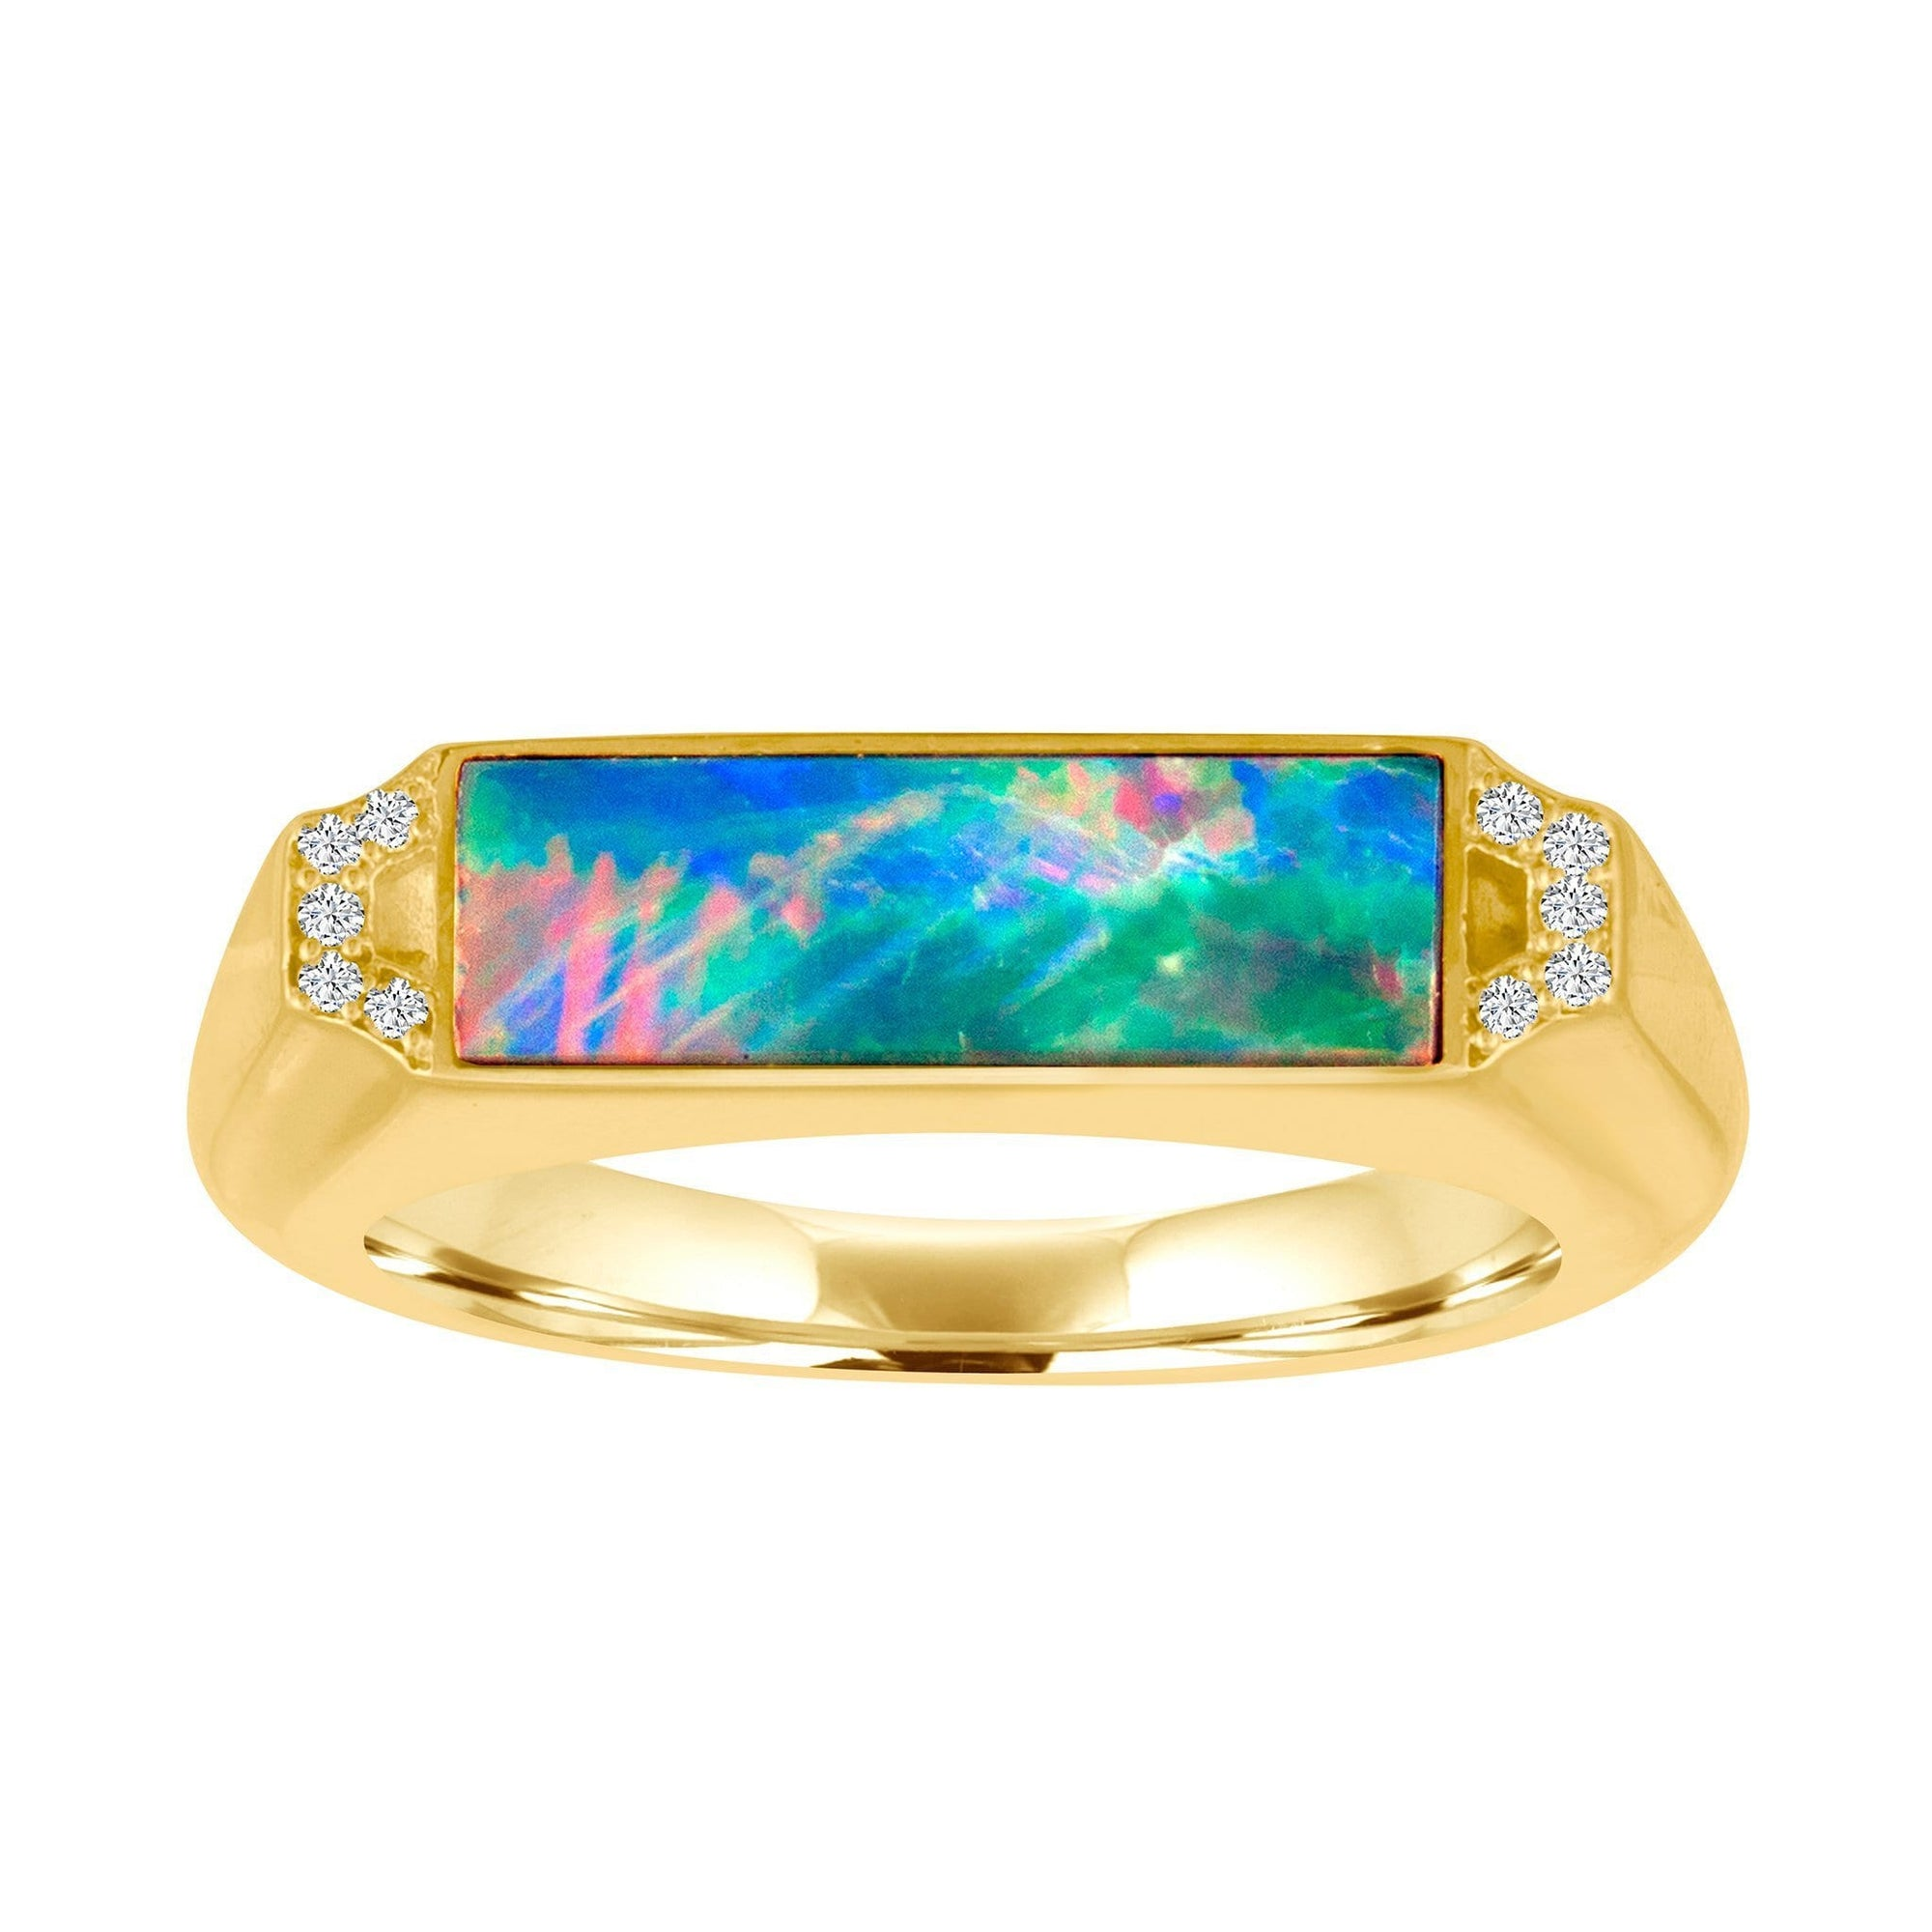 Edge Signet Ring: 18k Gold, Diamond, Opal